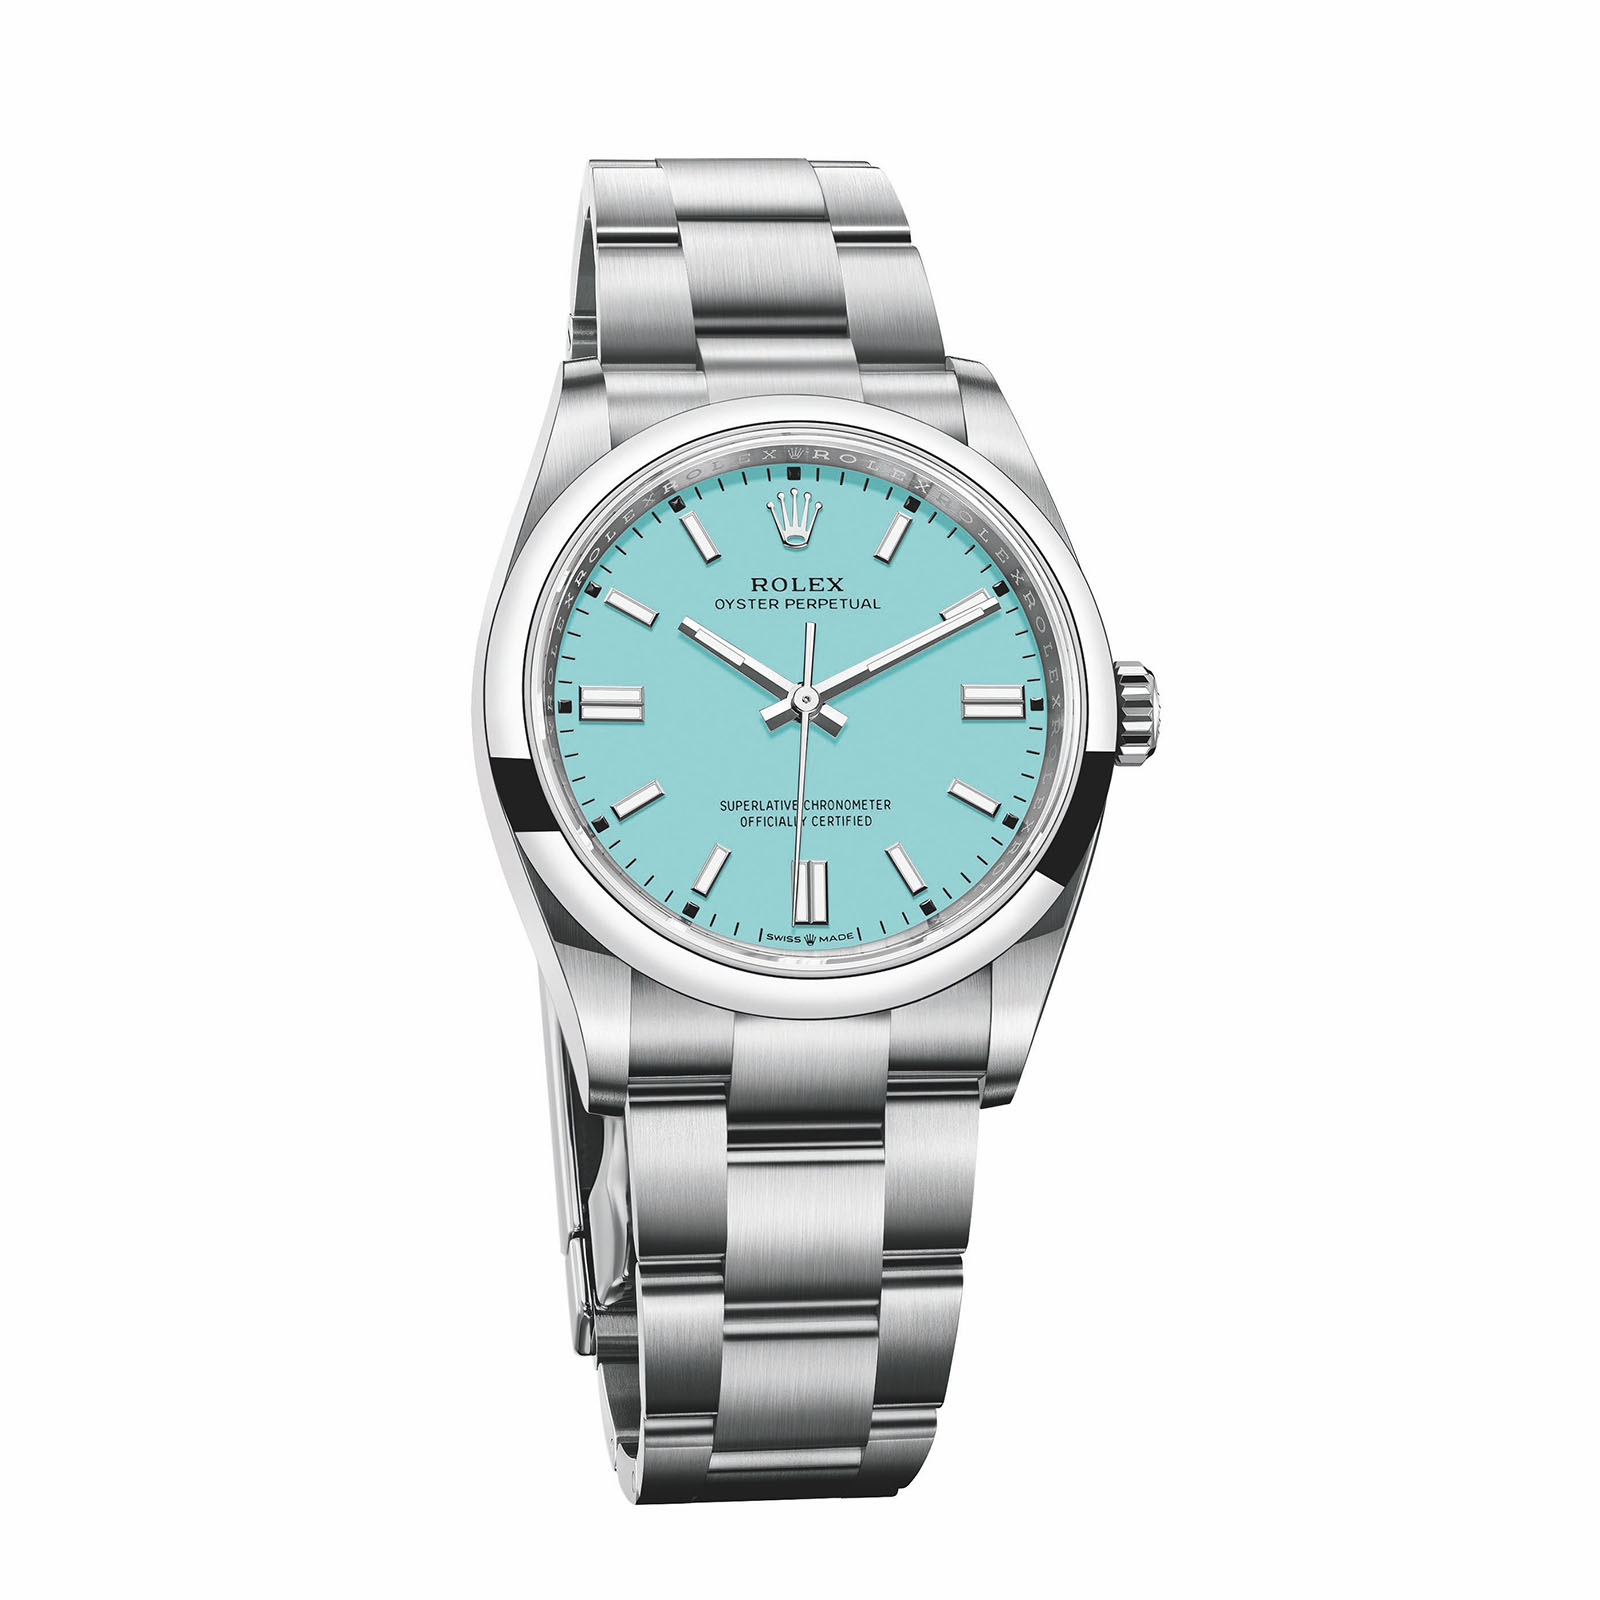 Rolex Oyster Perpetual 36mm Oystersteel 2020 Turquoise Blue